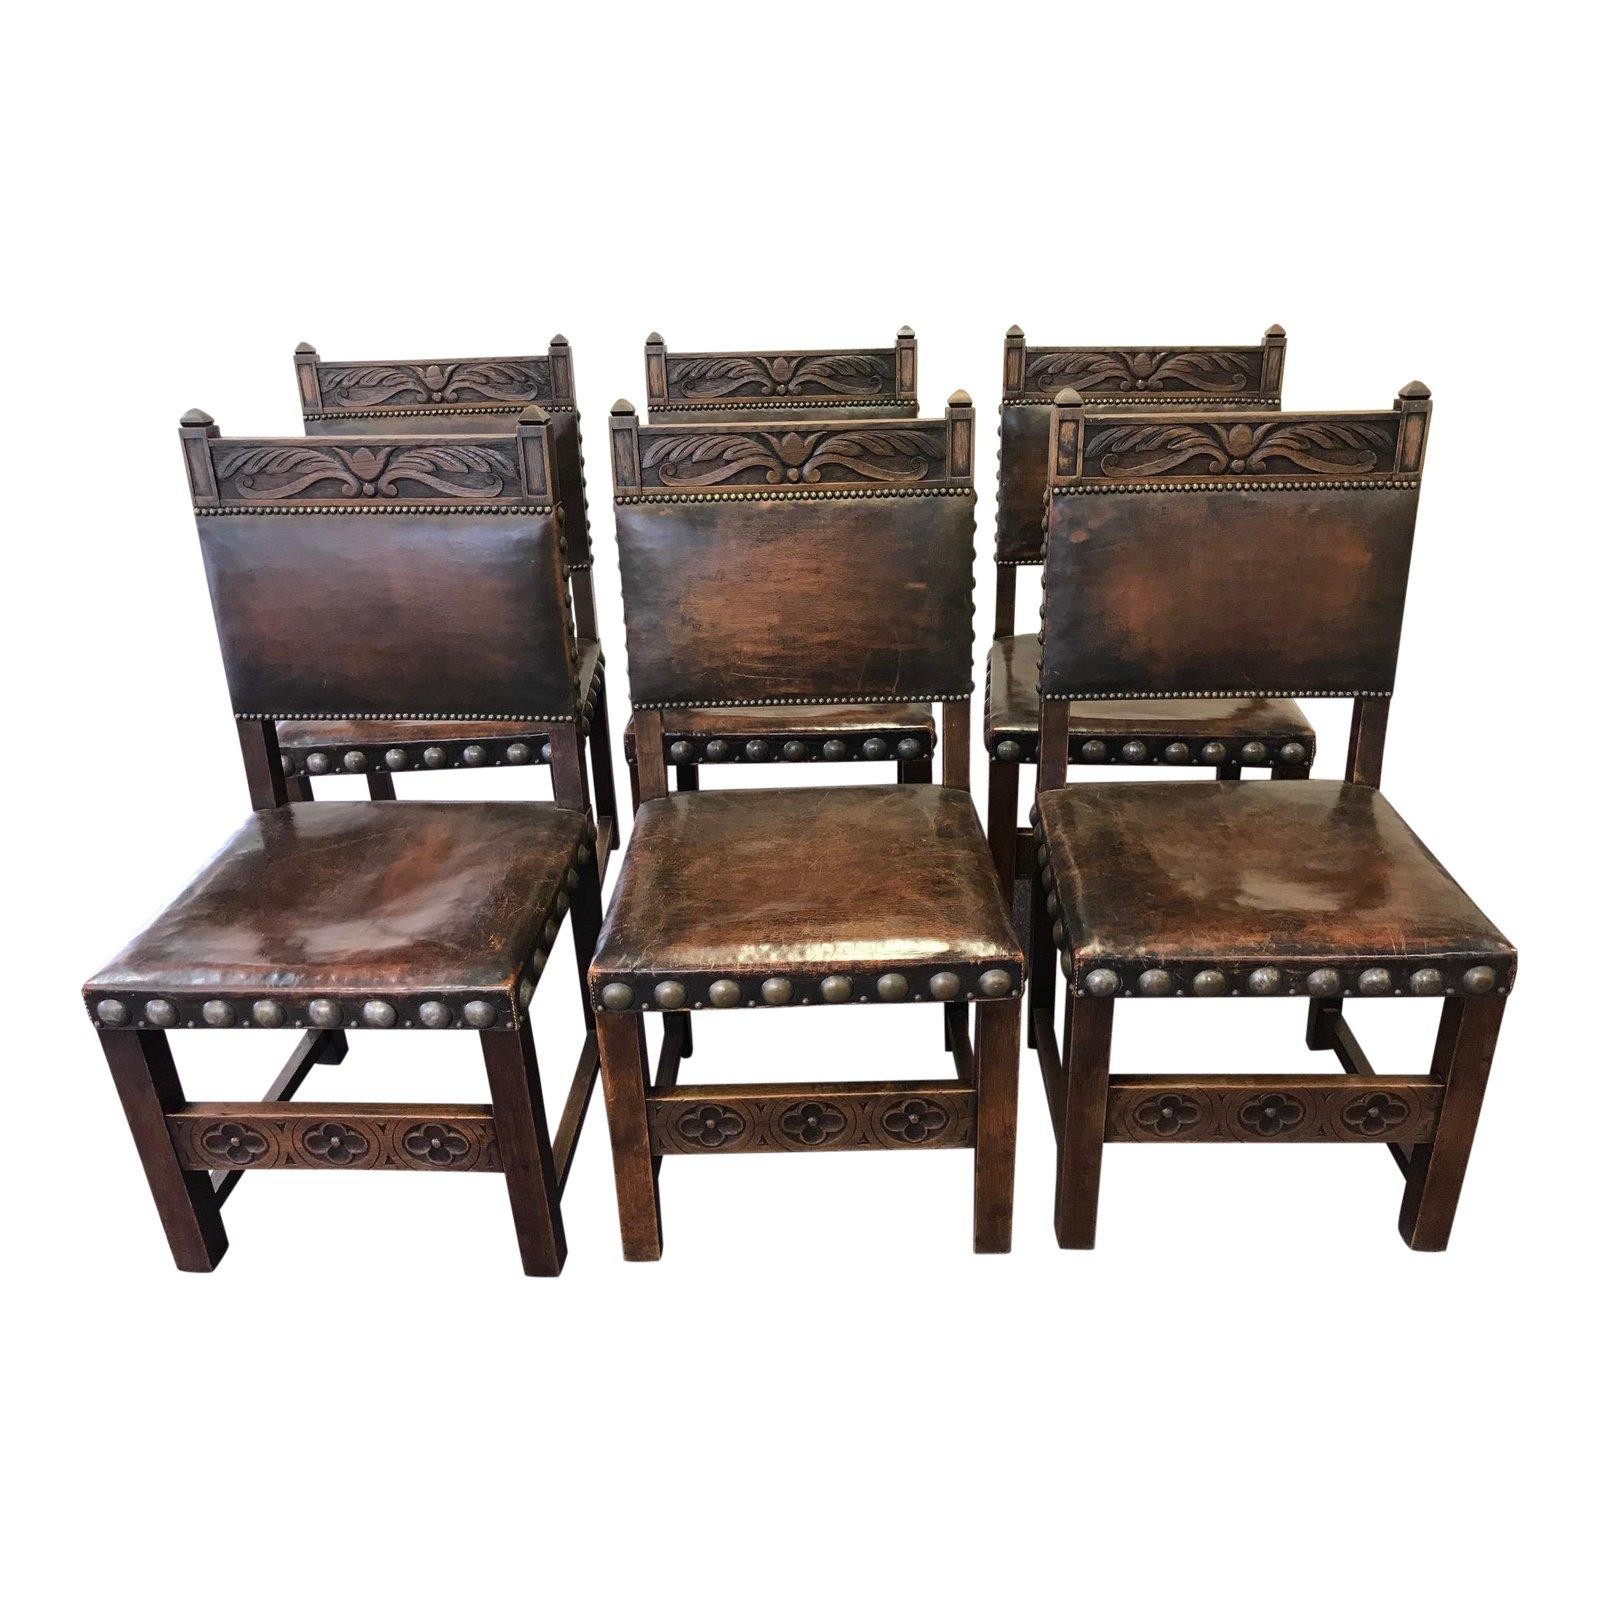 Medieval Dining Room Chairs   7 For Sale At 1stdibs